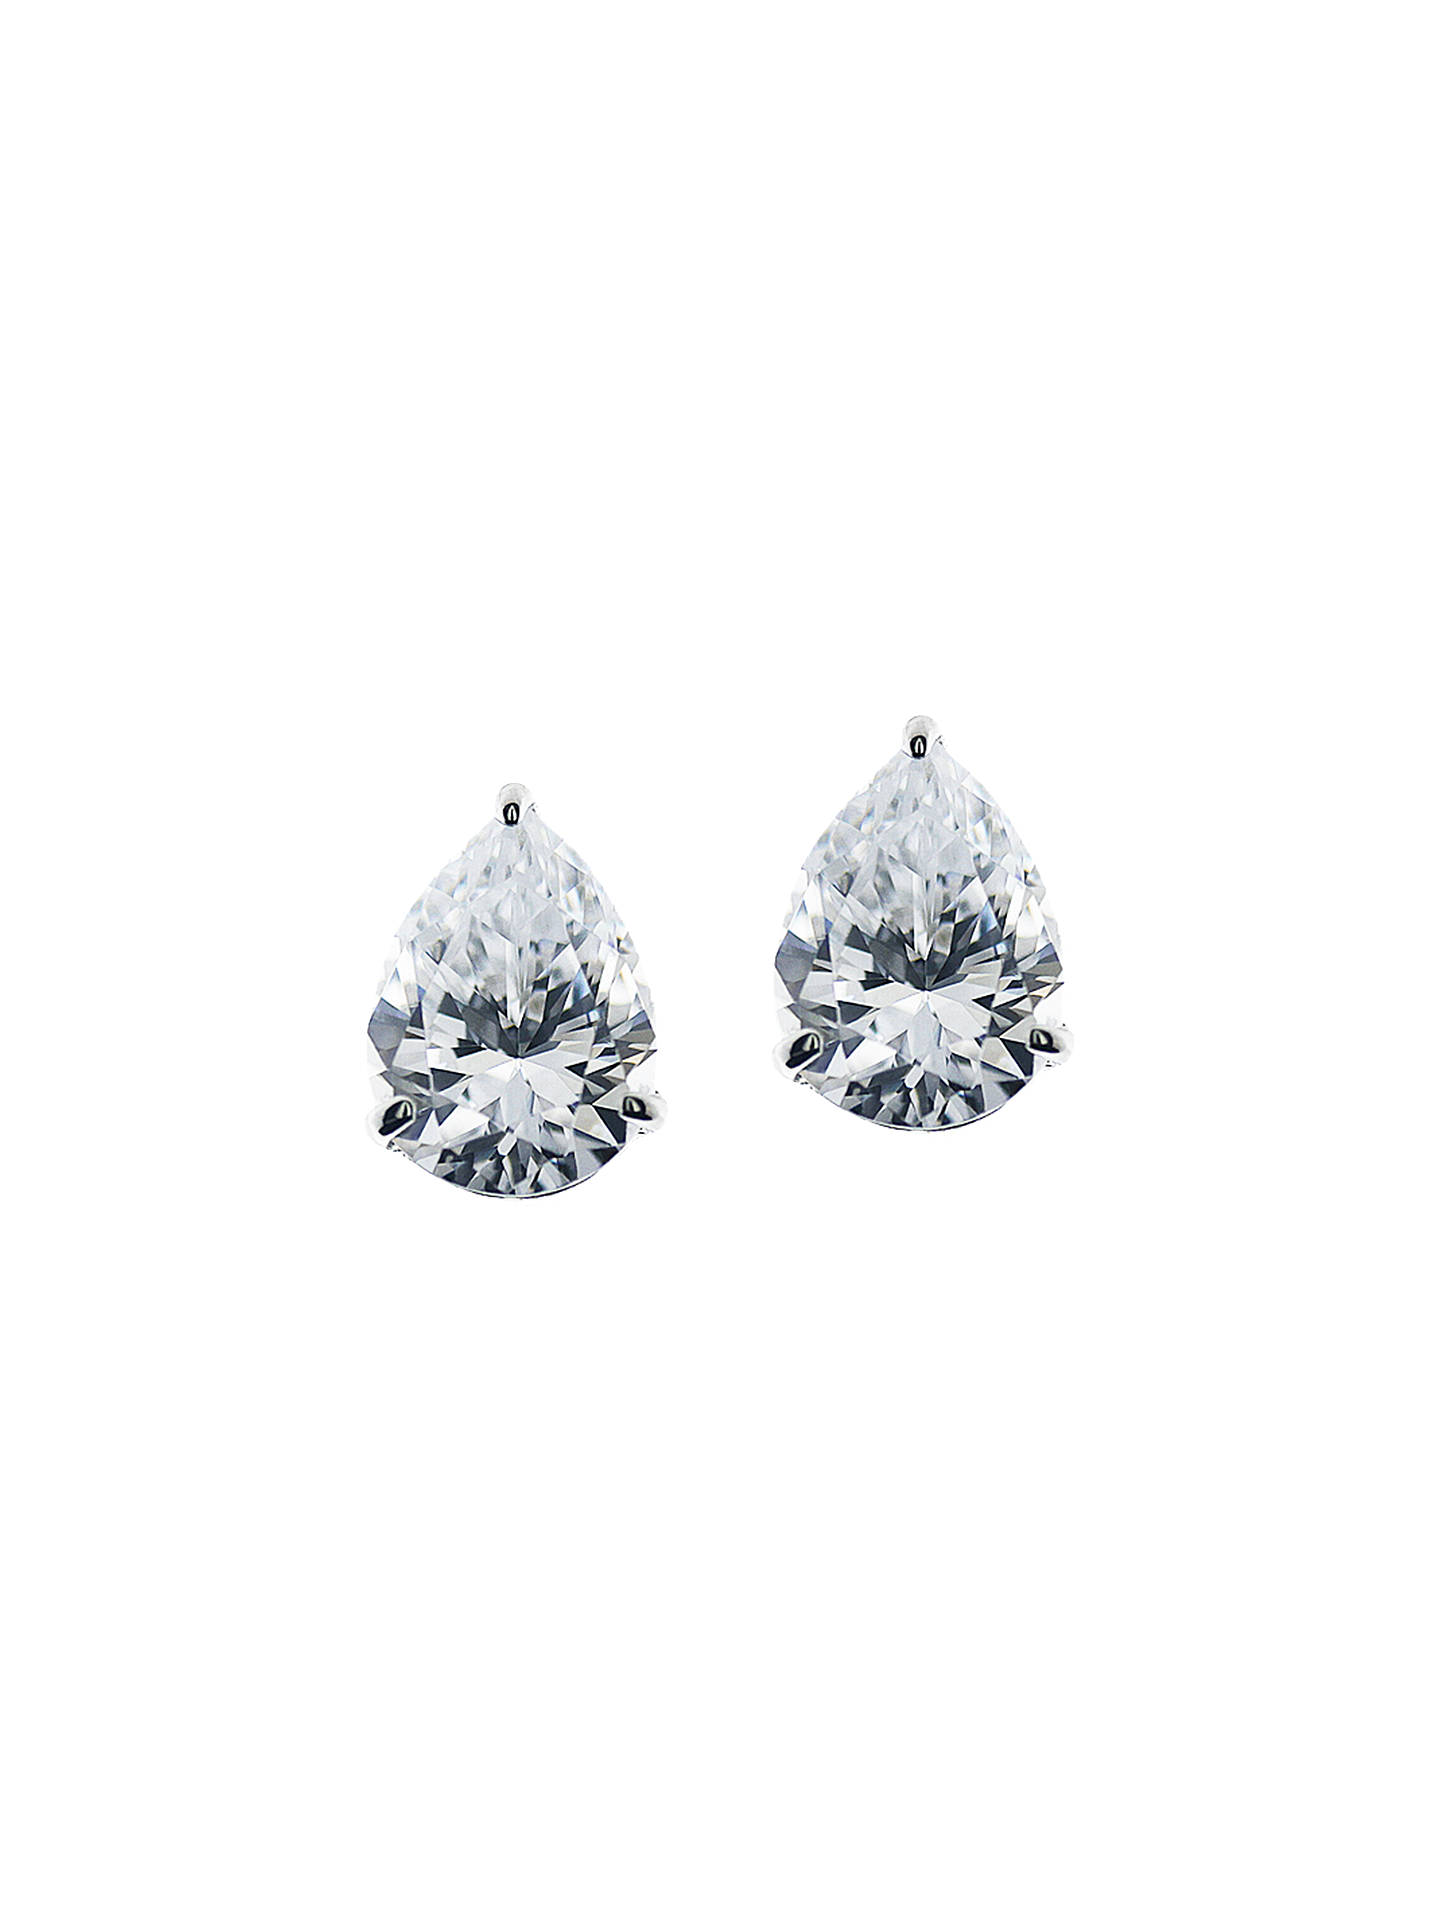 BuyCARAT* London 9ct White Gold Teardrop Stud Earrings Online at johnlewis.com